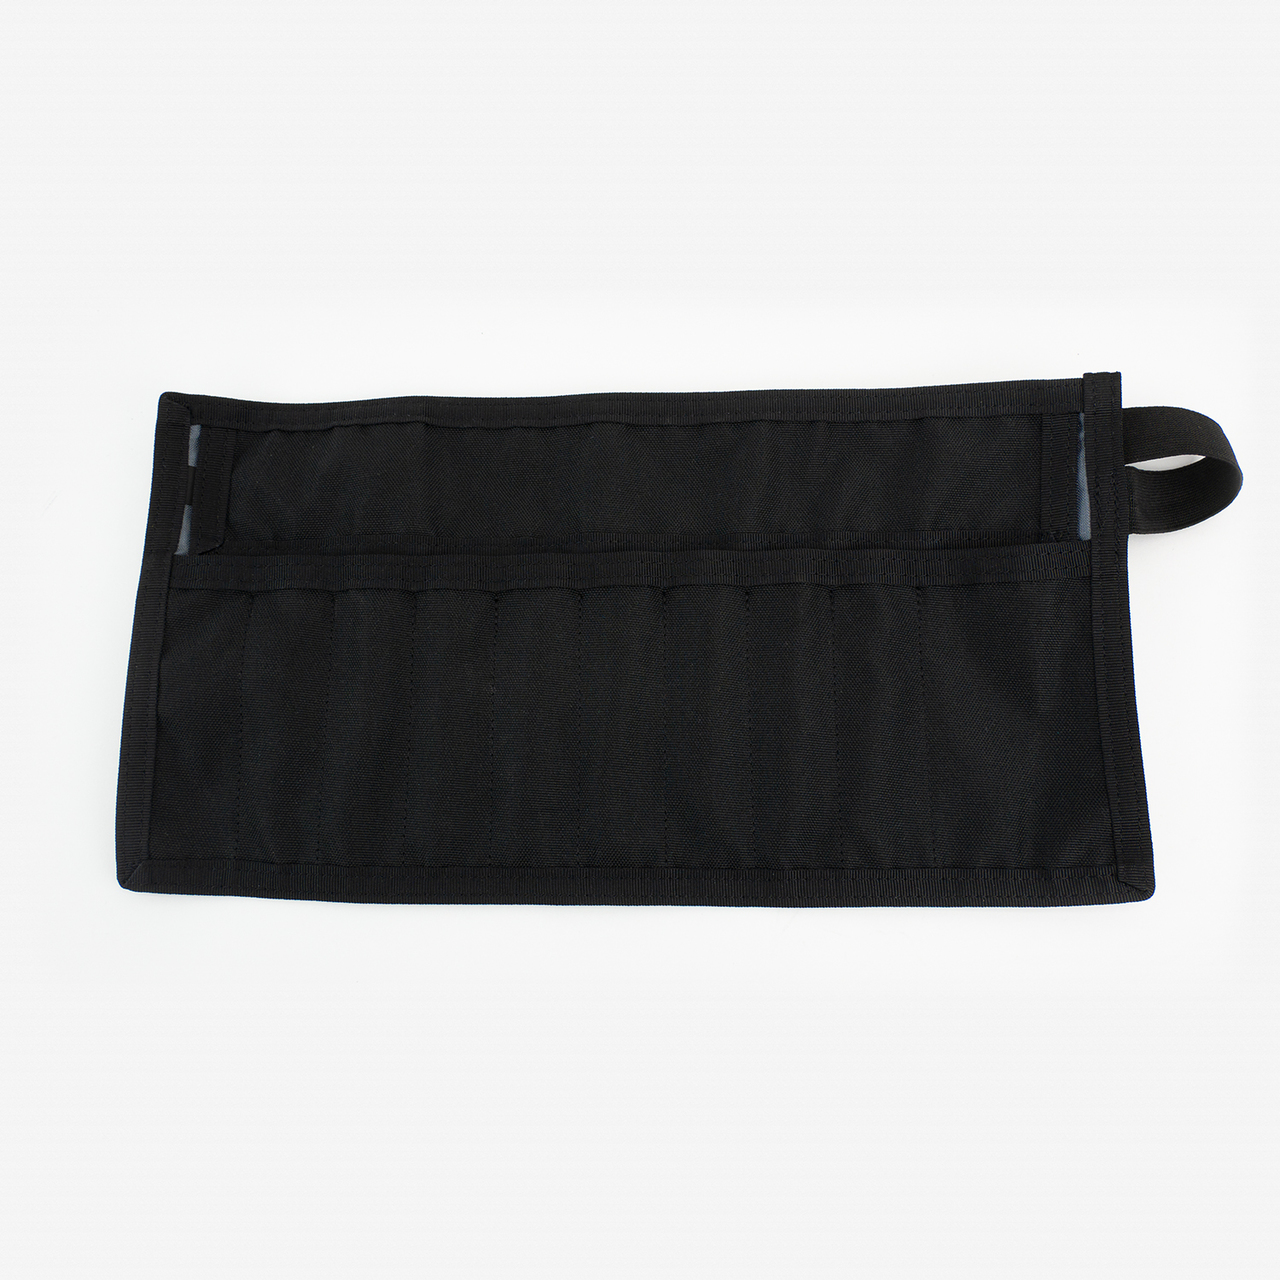 Wiha 91459 Precision Rollup Pouch with Clasp, Black - KC Tool